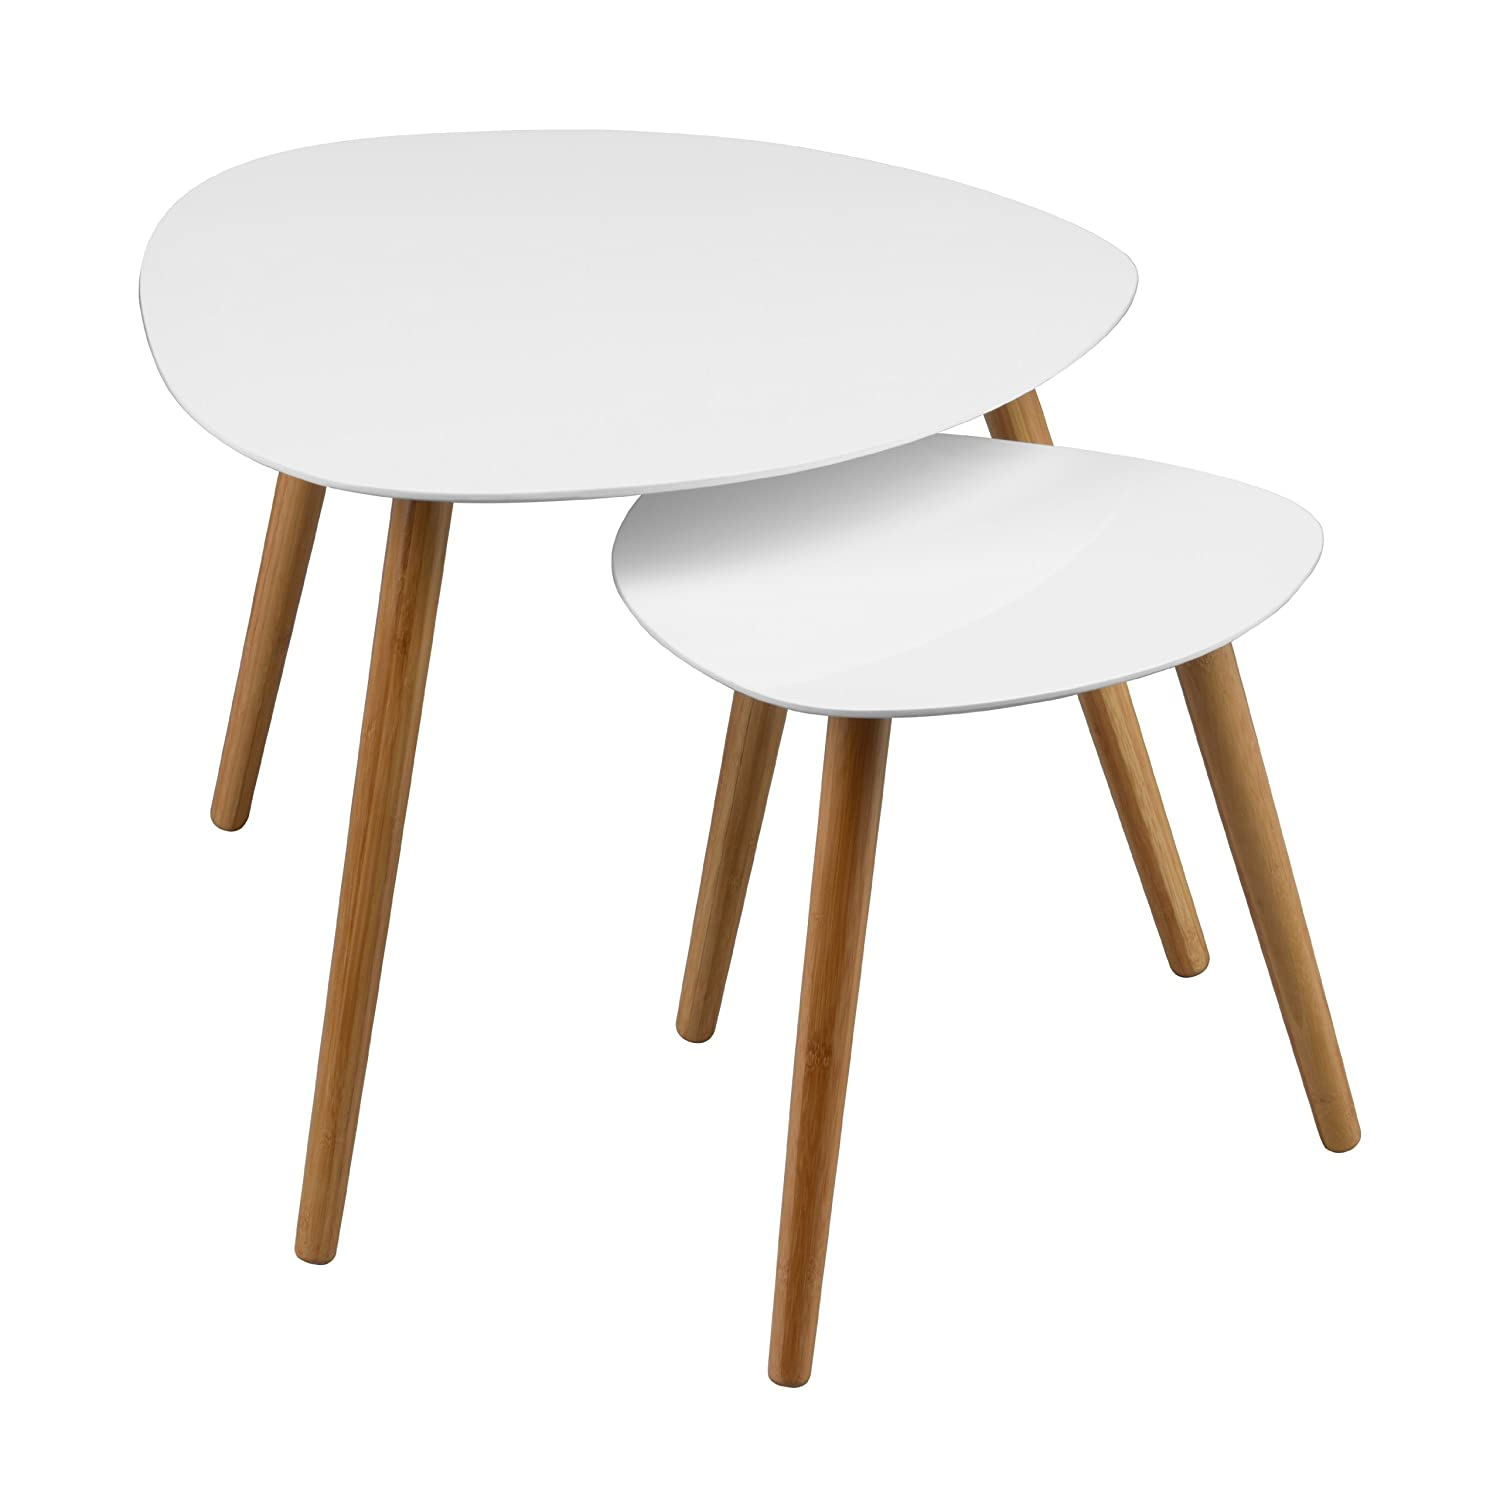 Premier Housewares Nostra Nest of Two Triangular Tables with